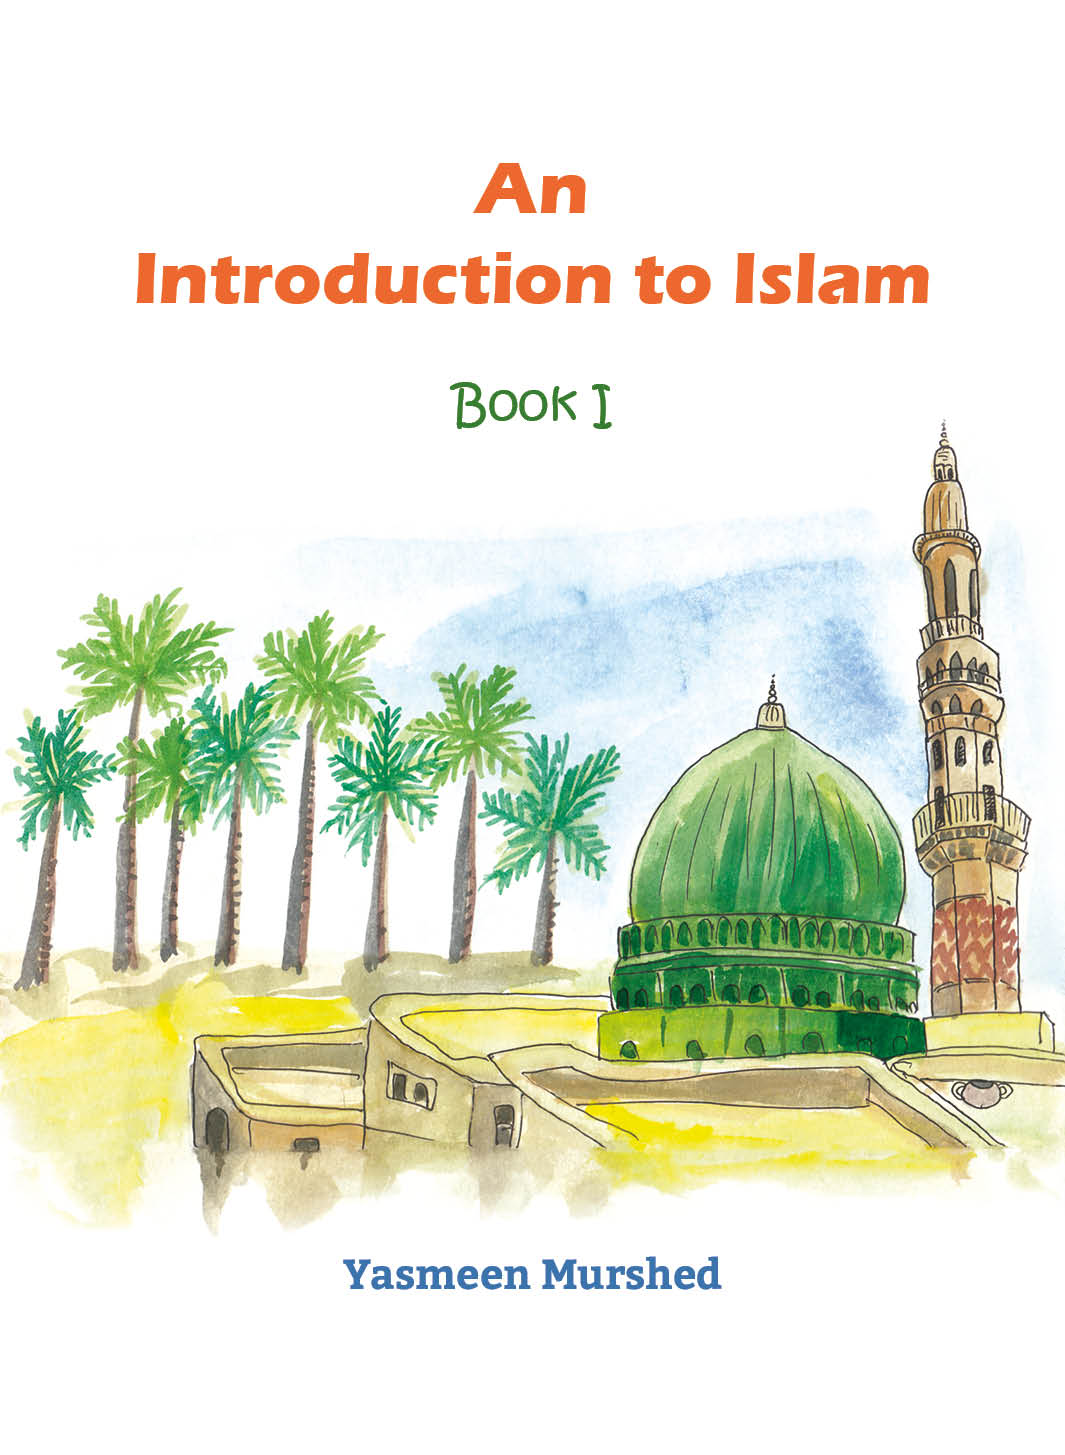 An Introduction to Islam Series